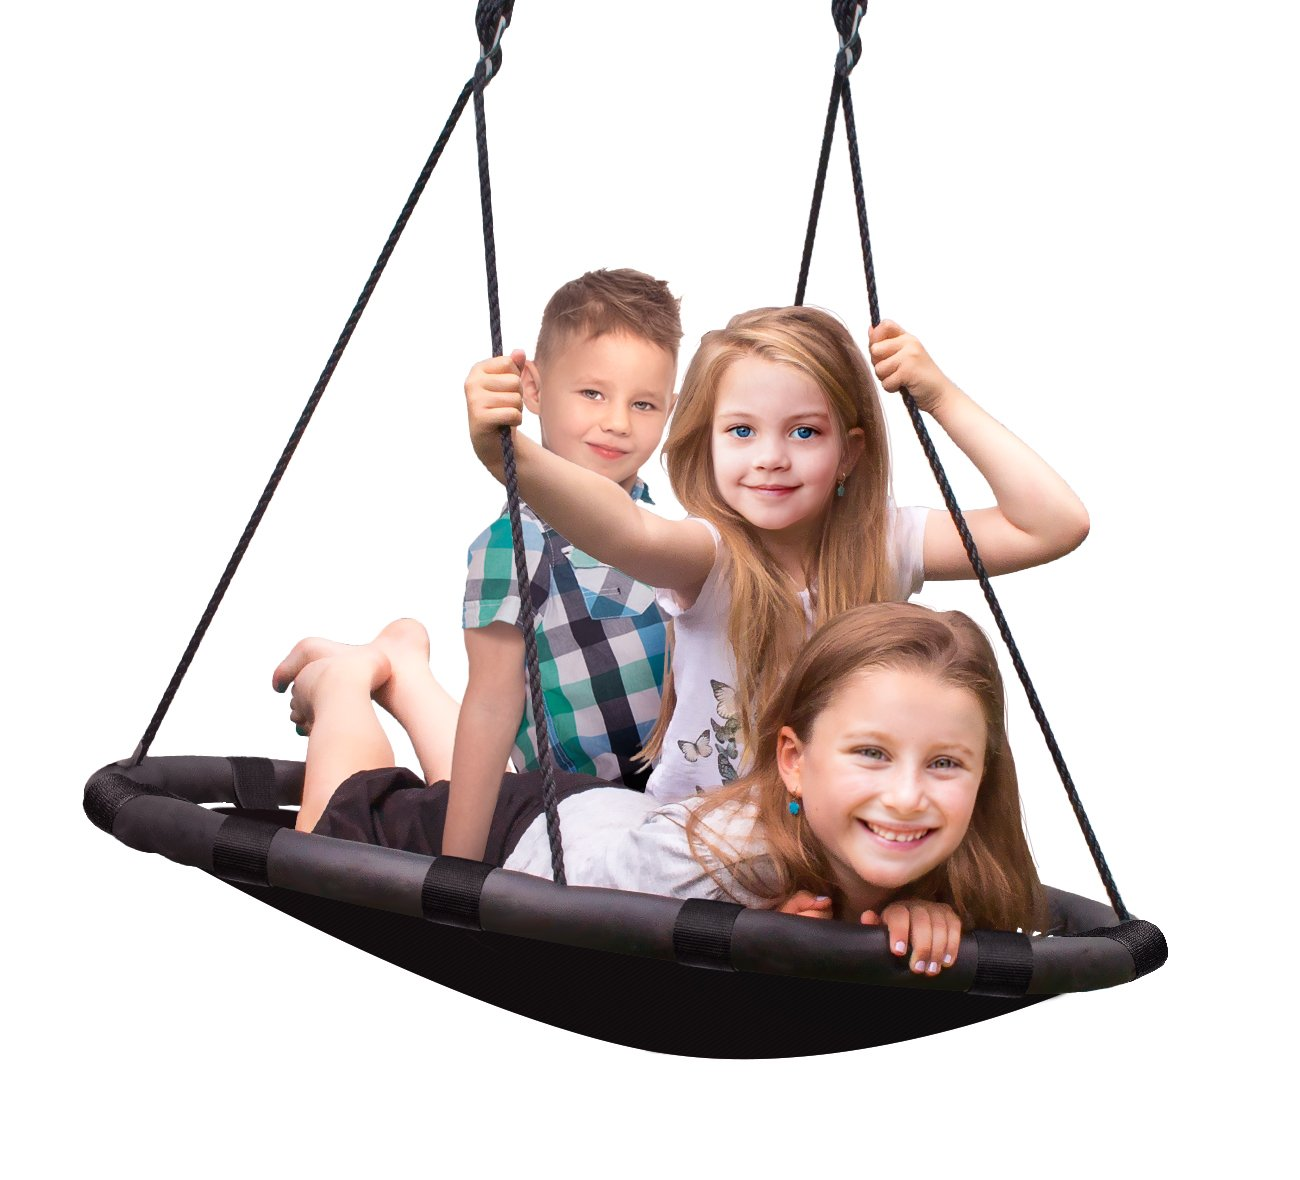 Sorbus Spinner Swing - Kids Indoor/Outdoor Round Mat Swing - Great for Tree, Swing Set, Backyard, Playground, Playroom - Accessories Included (40'' Mat Seat) by Sorbus